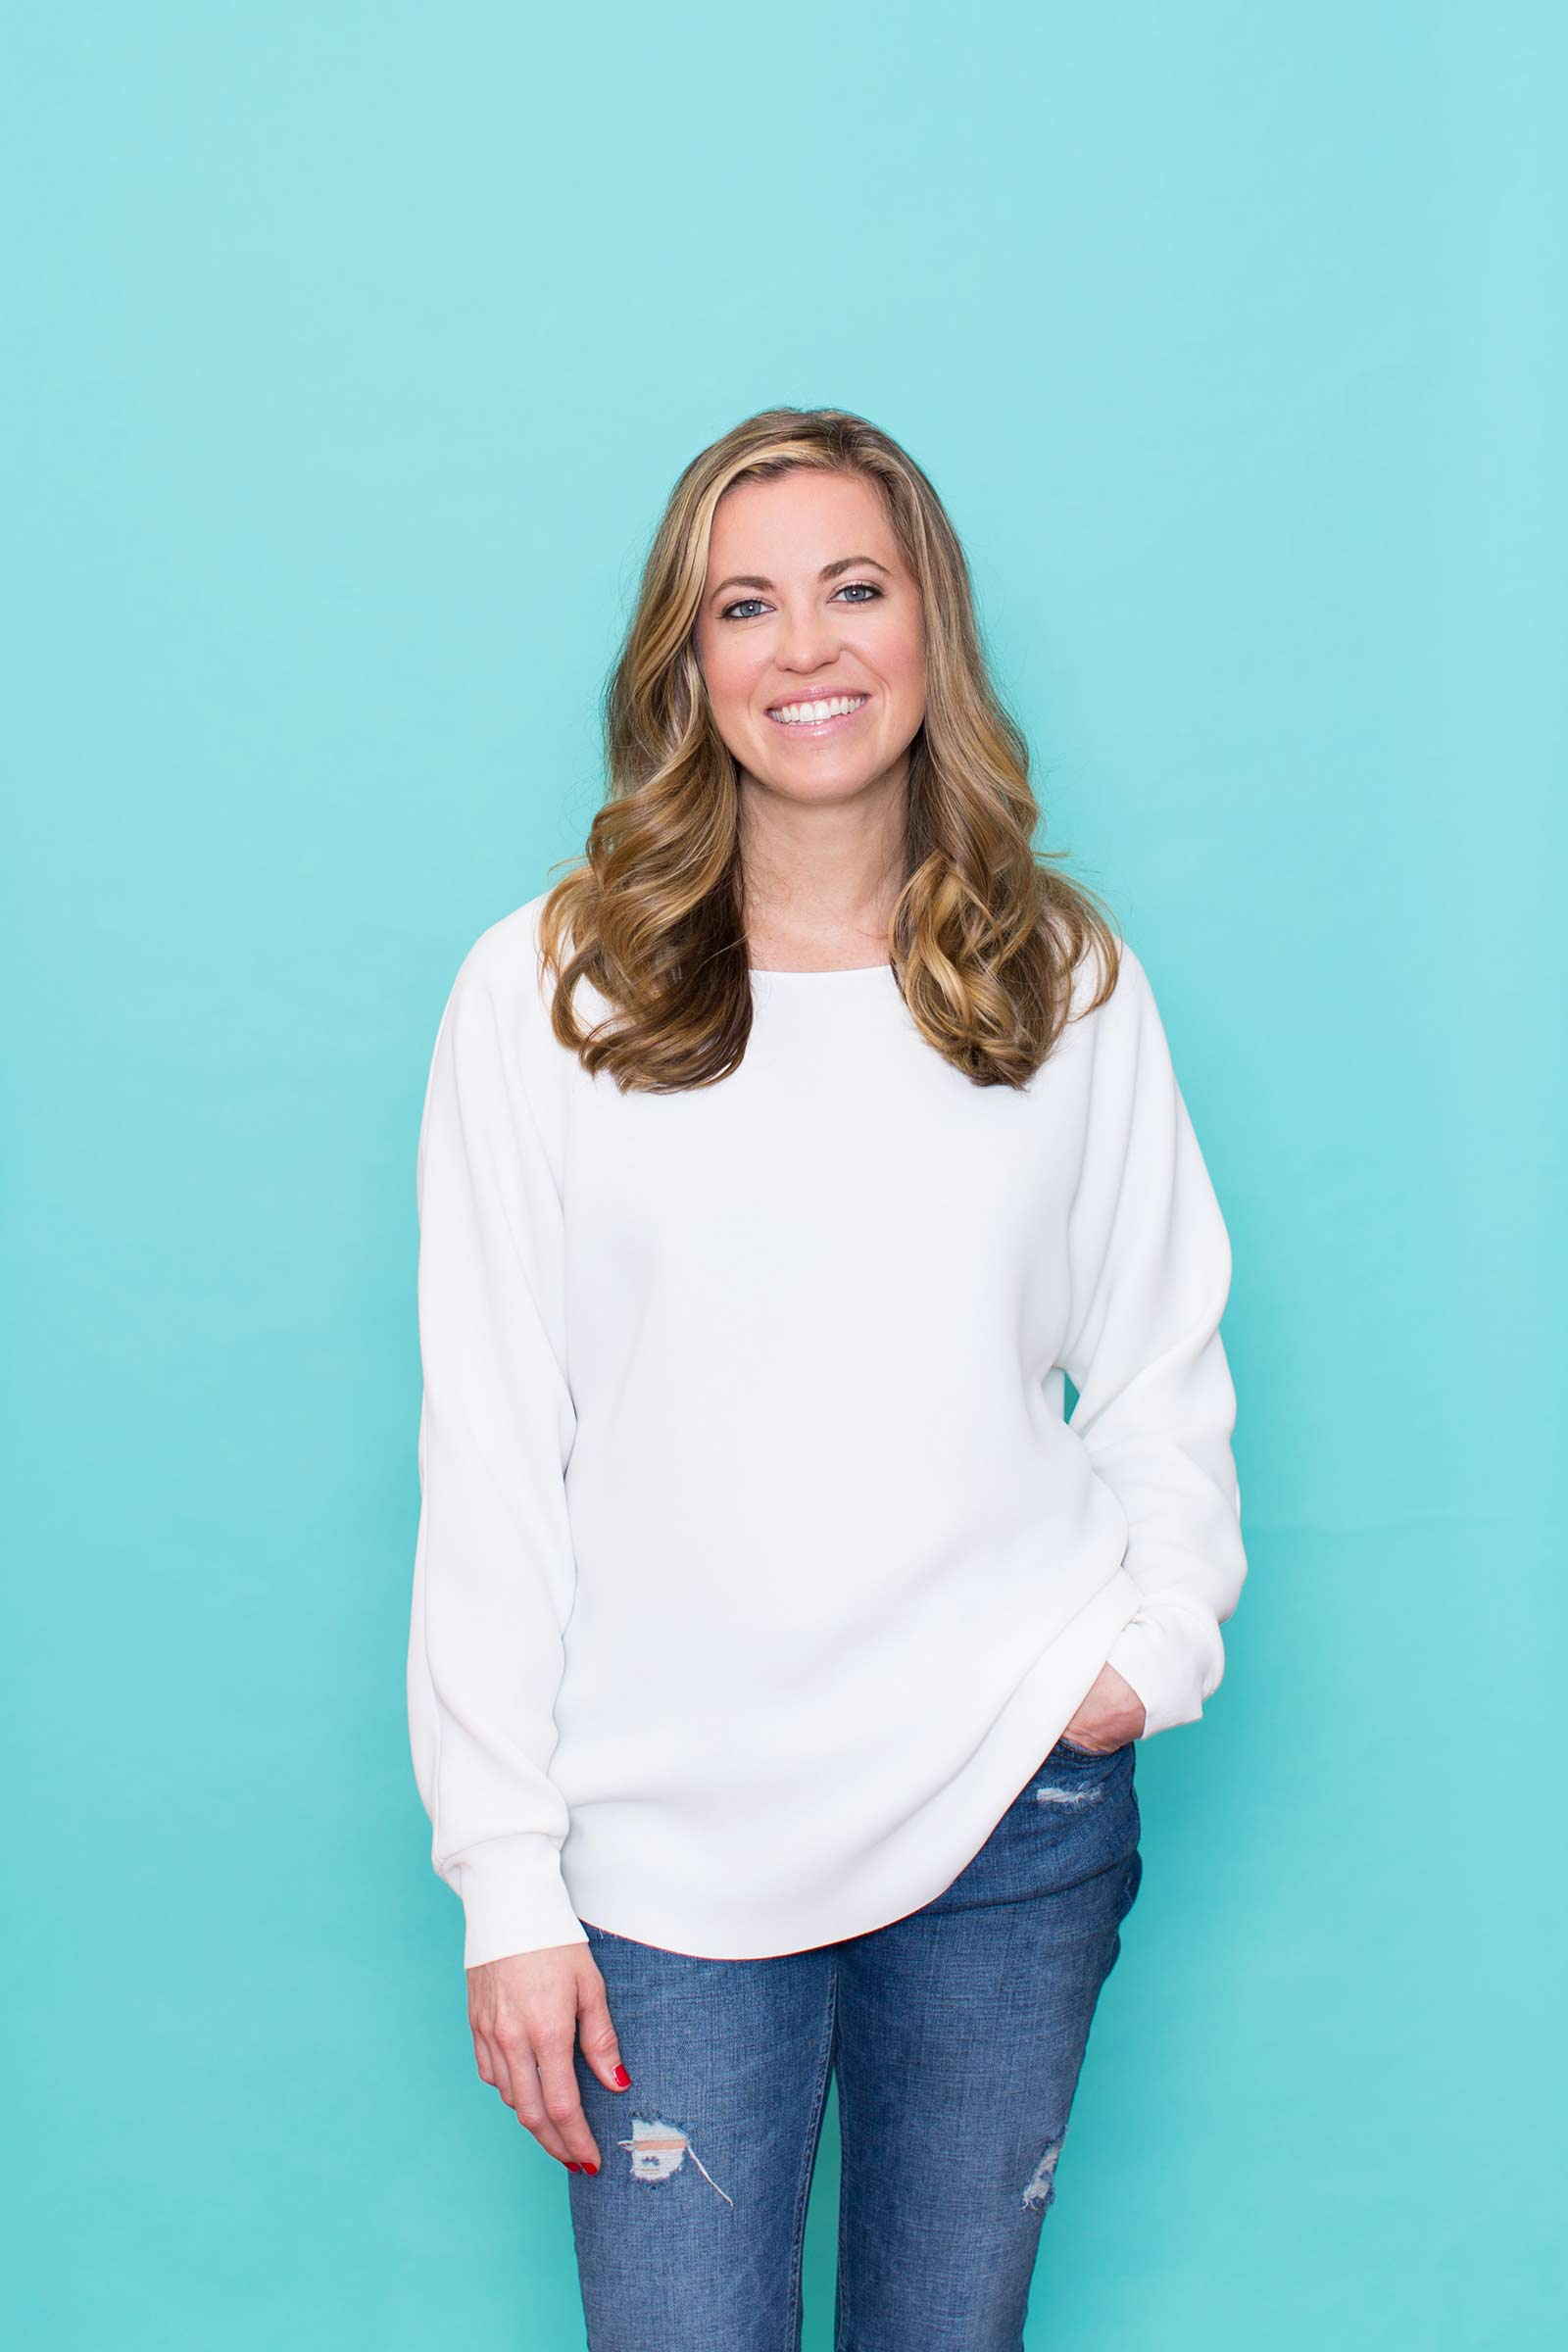 Testimonial and Headshot of Michelle Muller, Co-Founder of Little Spoon